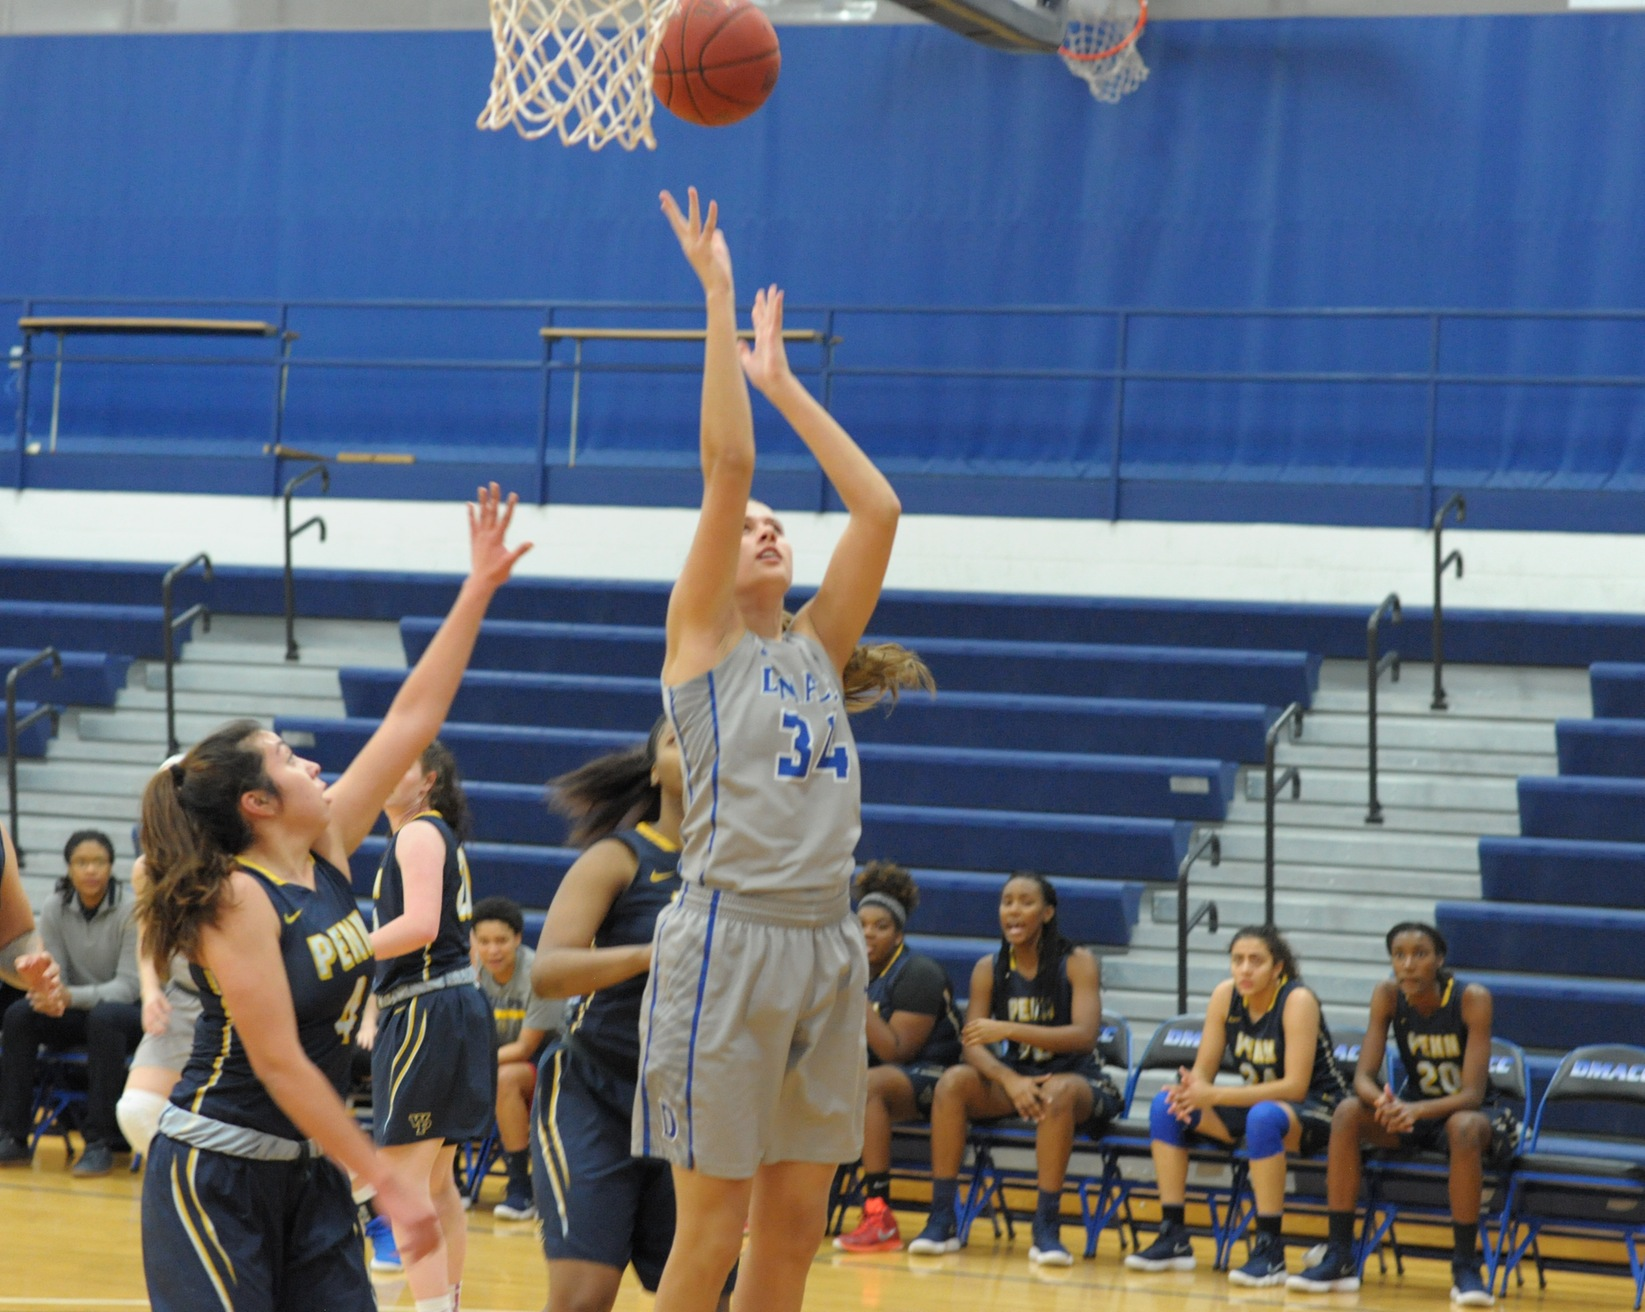 DMACC Women's Basketball Team Falls to Grand View JV, 81-72